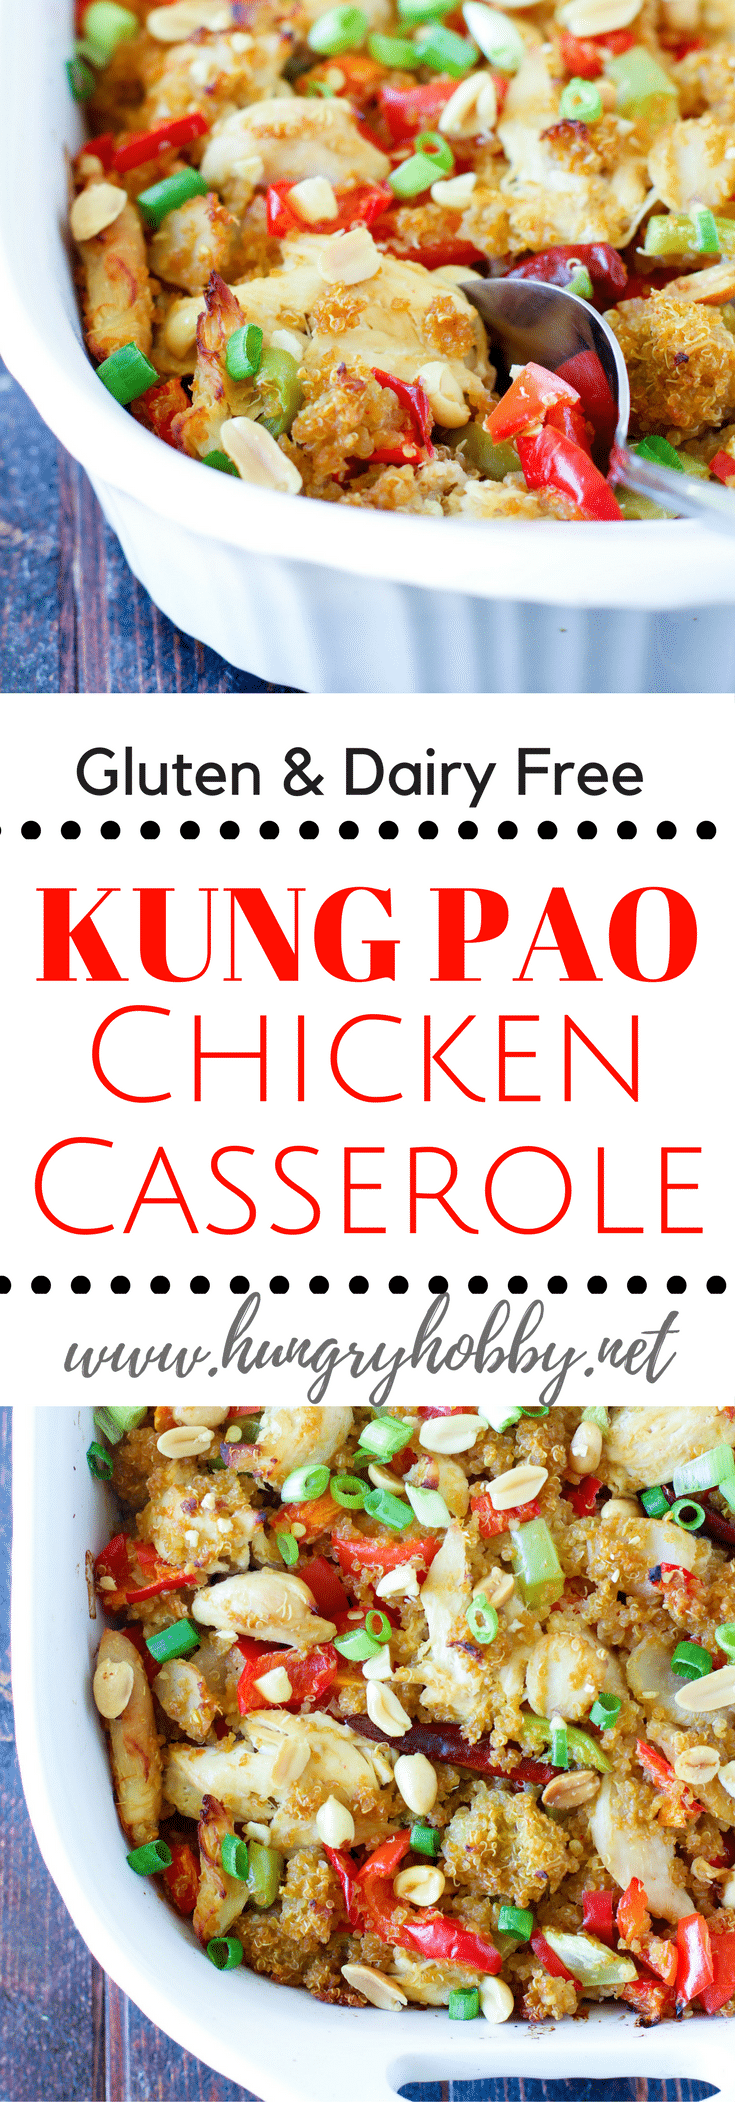 Kung Pao Chicken Casserole is BURSTING with flavor, plus it will feed a crowd or serve the best meal prep ever.  It's gluten & dairy free, plus it freezes well!